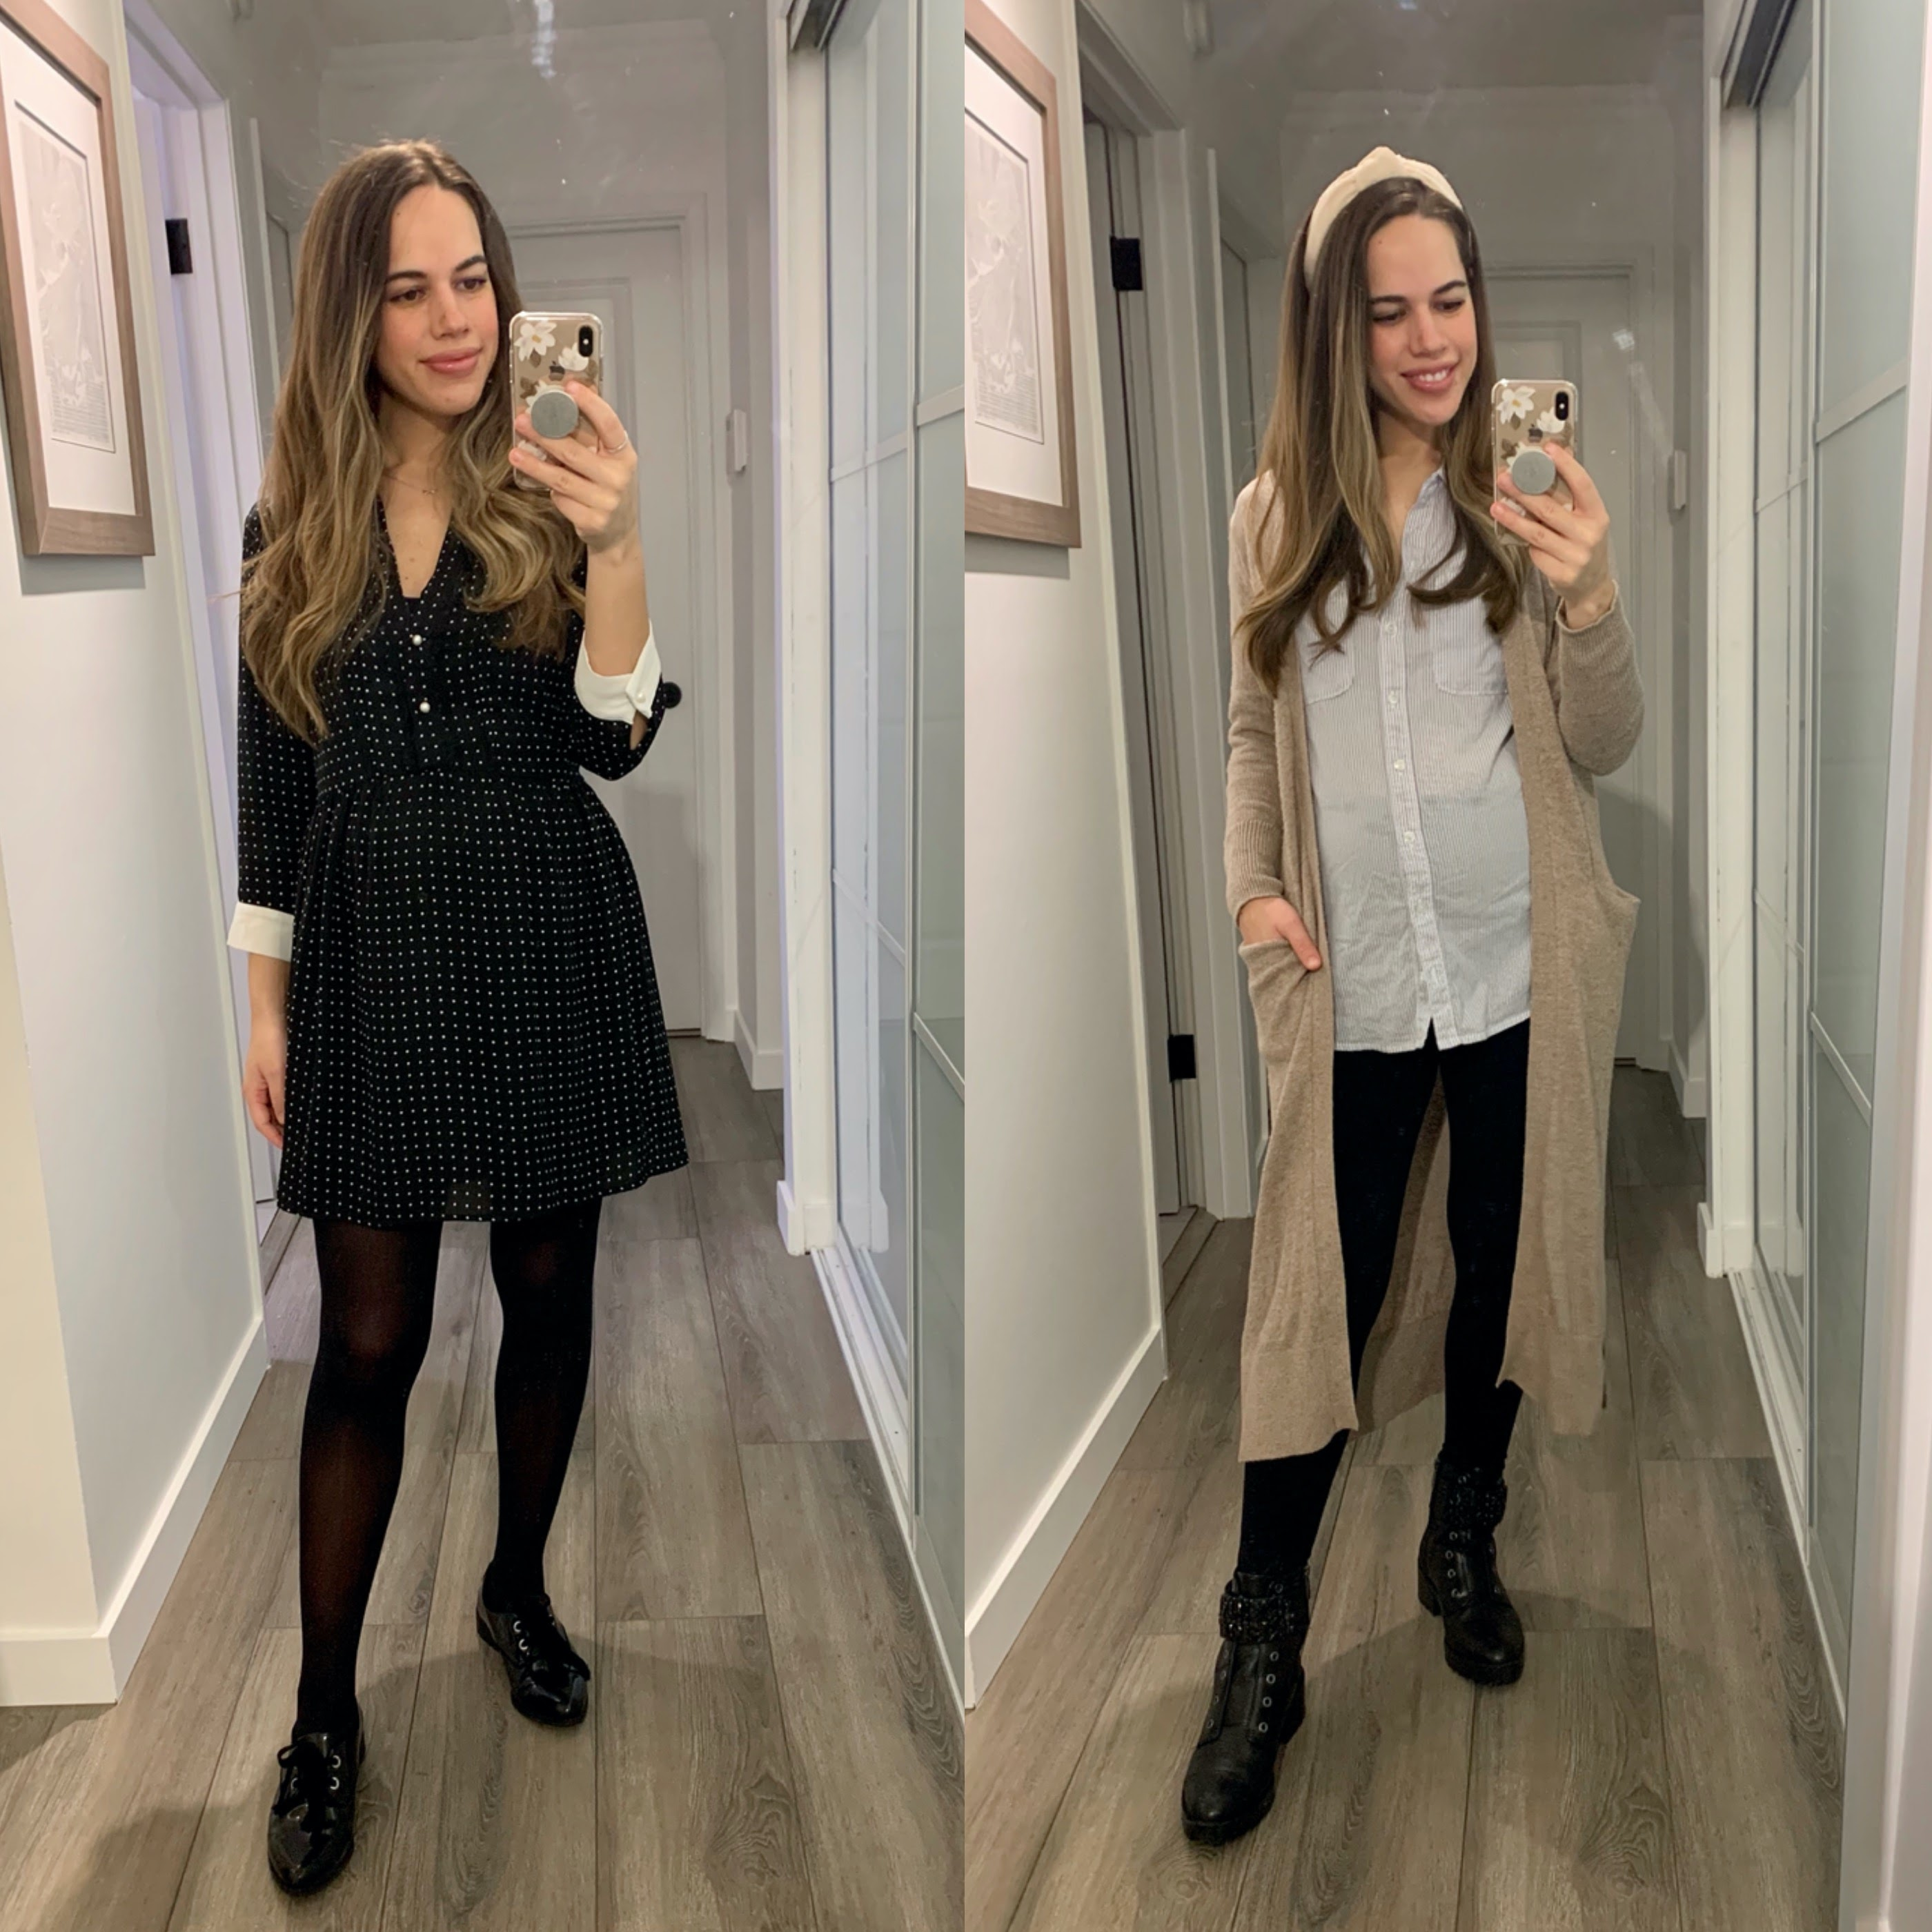 Jules in Flats - What I Wore to Work in December (Week 3)